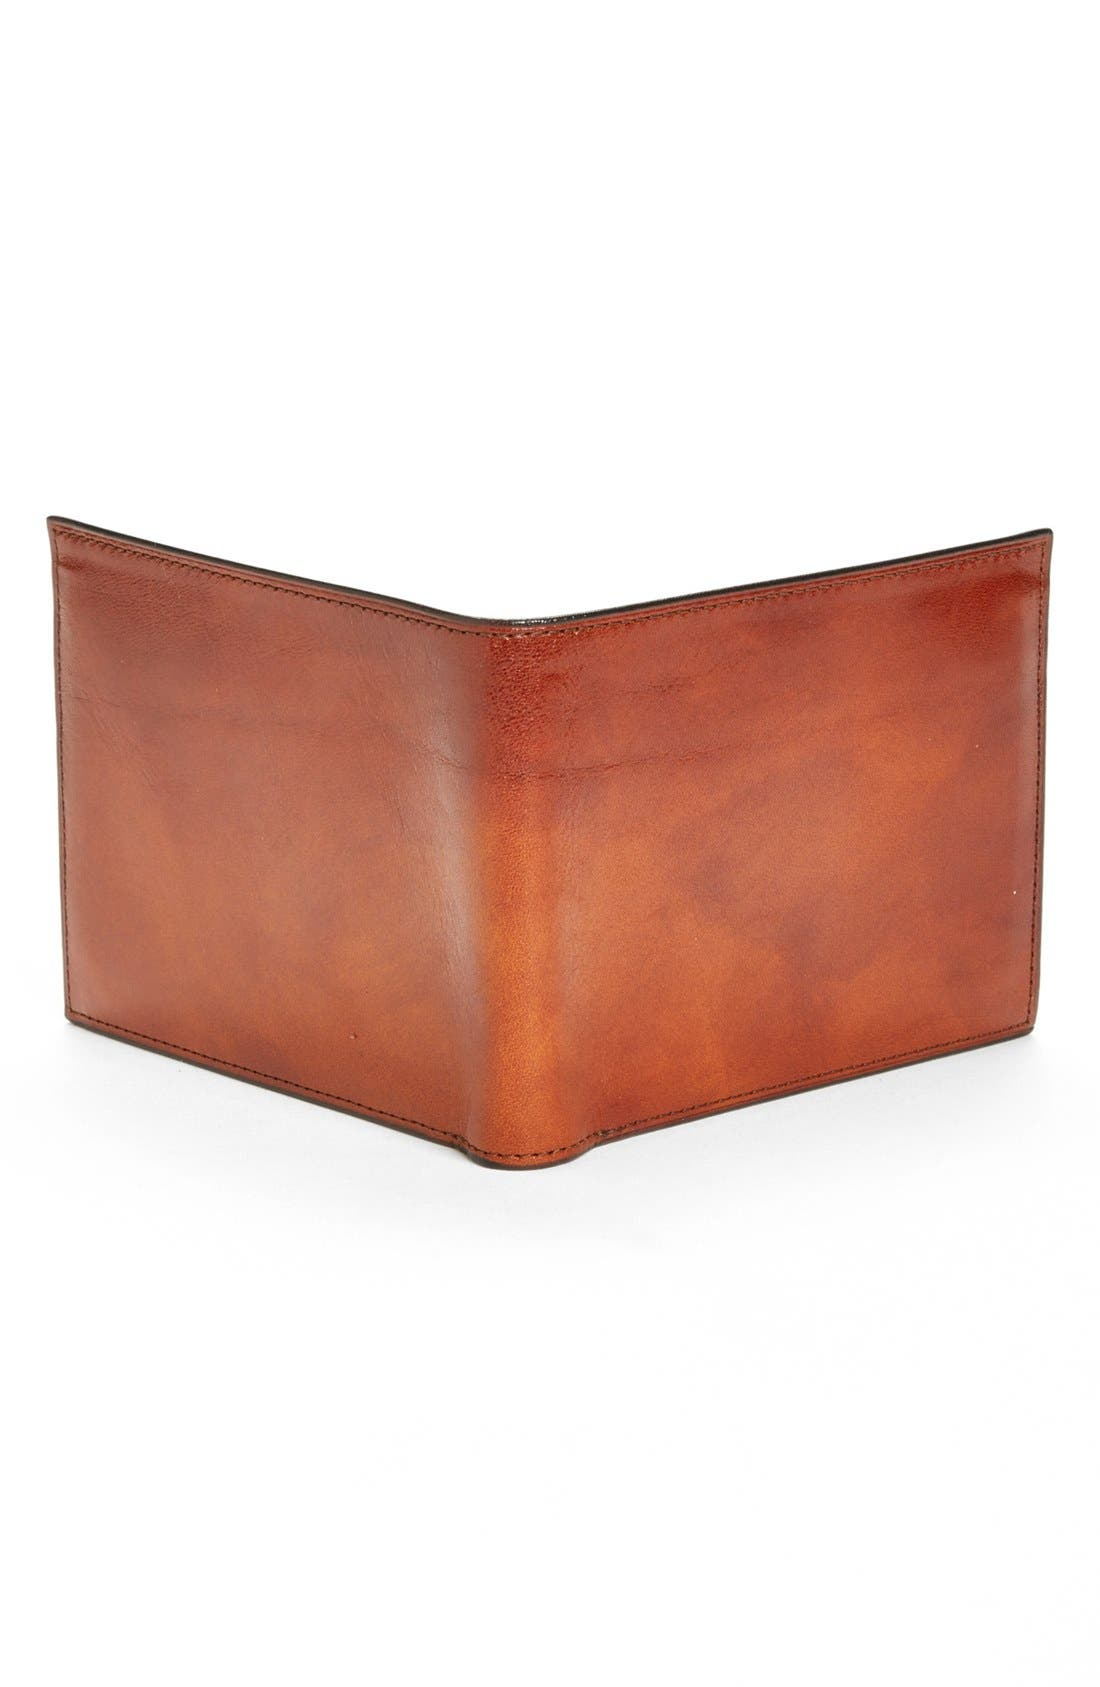 ID Flap Leather Wallet,                             Alternate thumbnail 7, color,